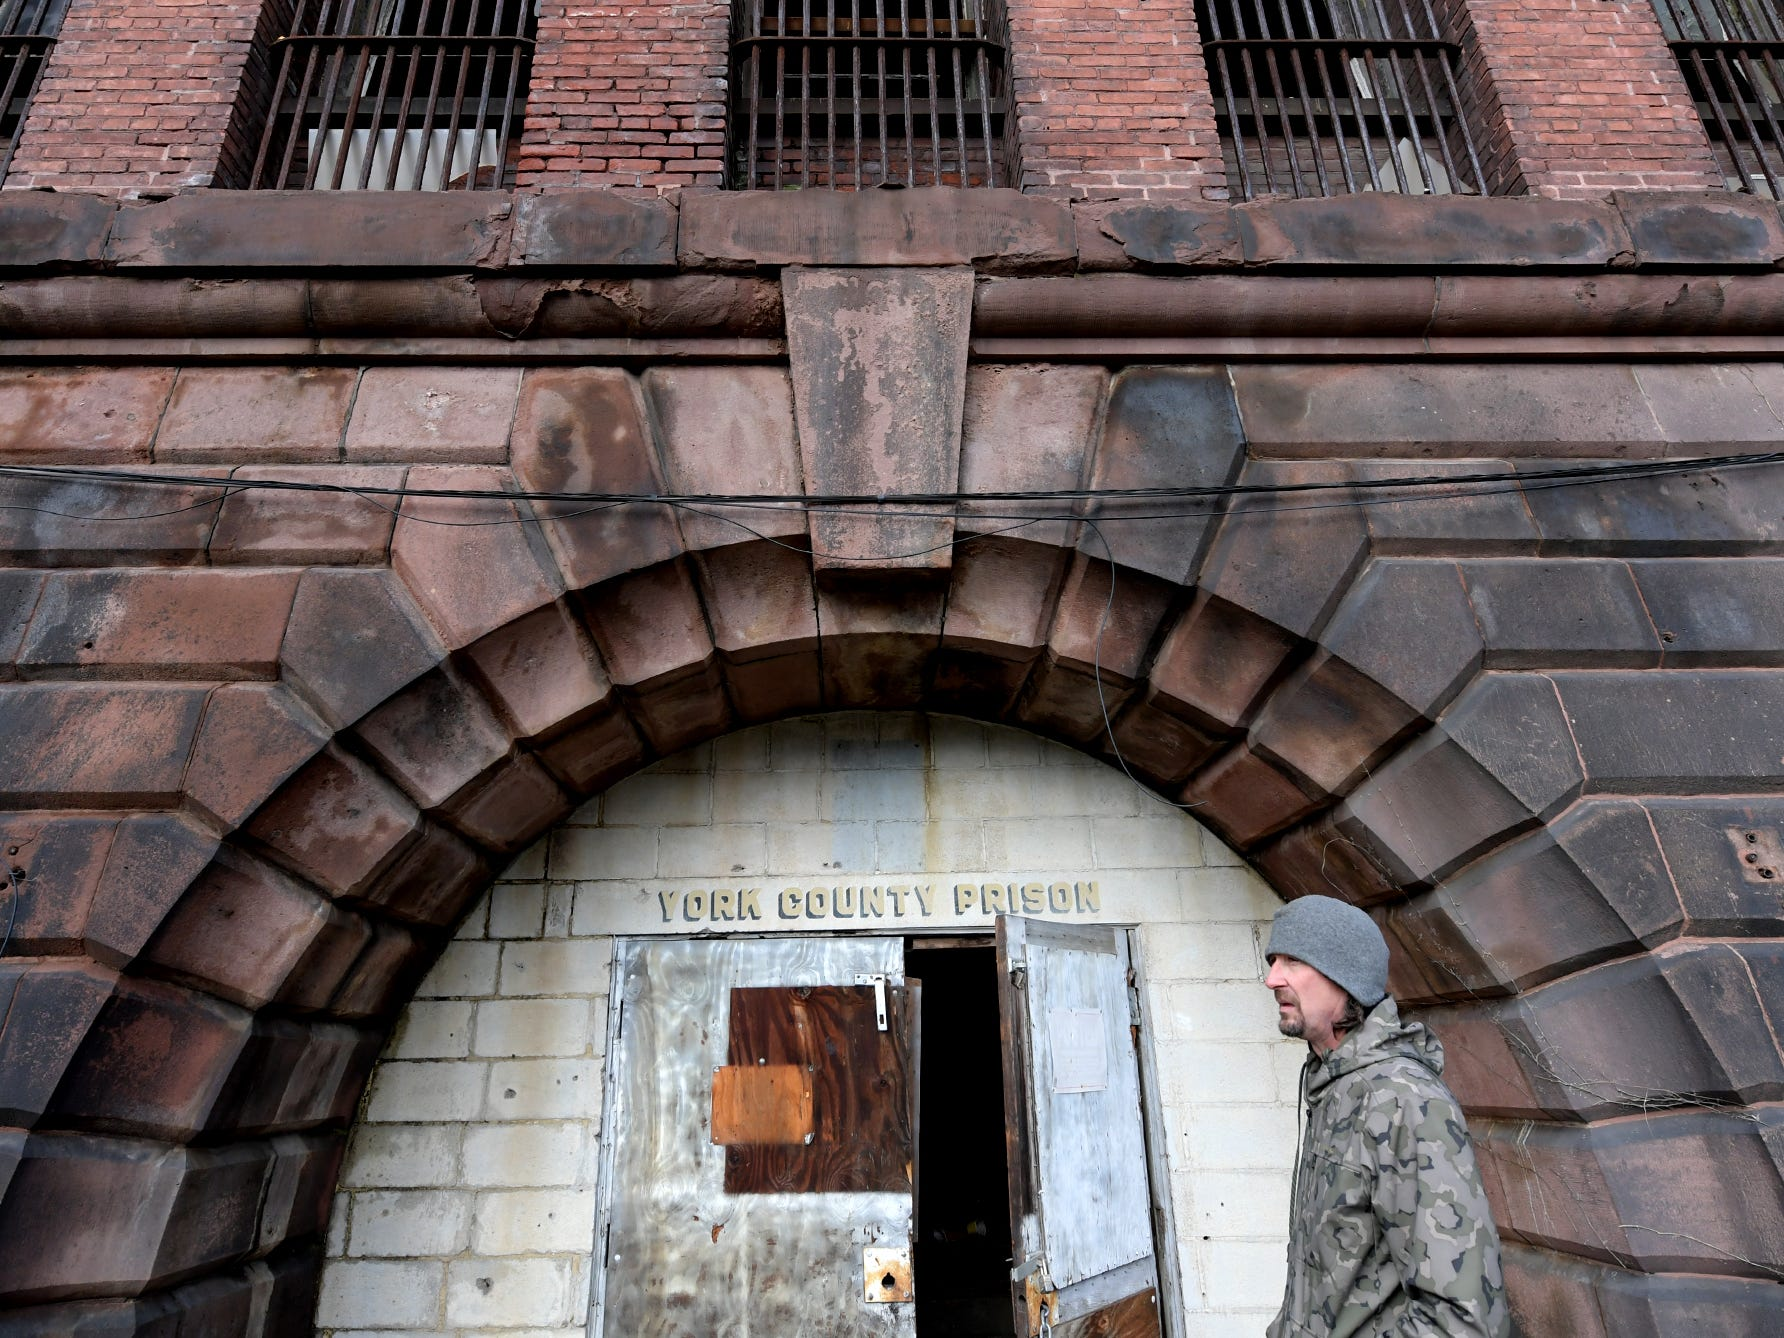 Think Loud building manager Scott Gracey stands at the entrance of the former York County Prison on Chestnut Street in York City Wednesday, Nov. 28, 2018. United Fiber and Data has purchased the building and plans to incorporate the structure into a data center to accompany a 400-mile fiber-optic network it's building between New York and Virginia. Bill Kalina photo